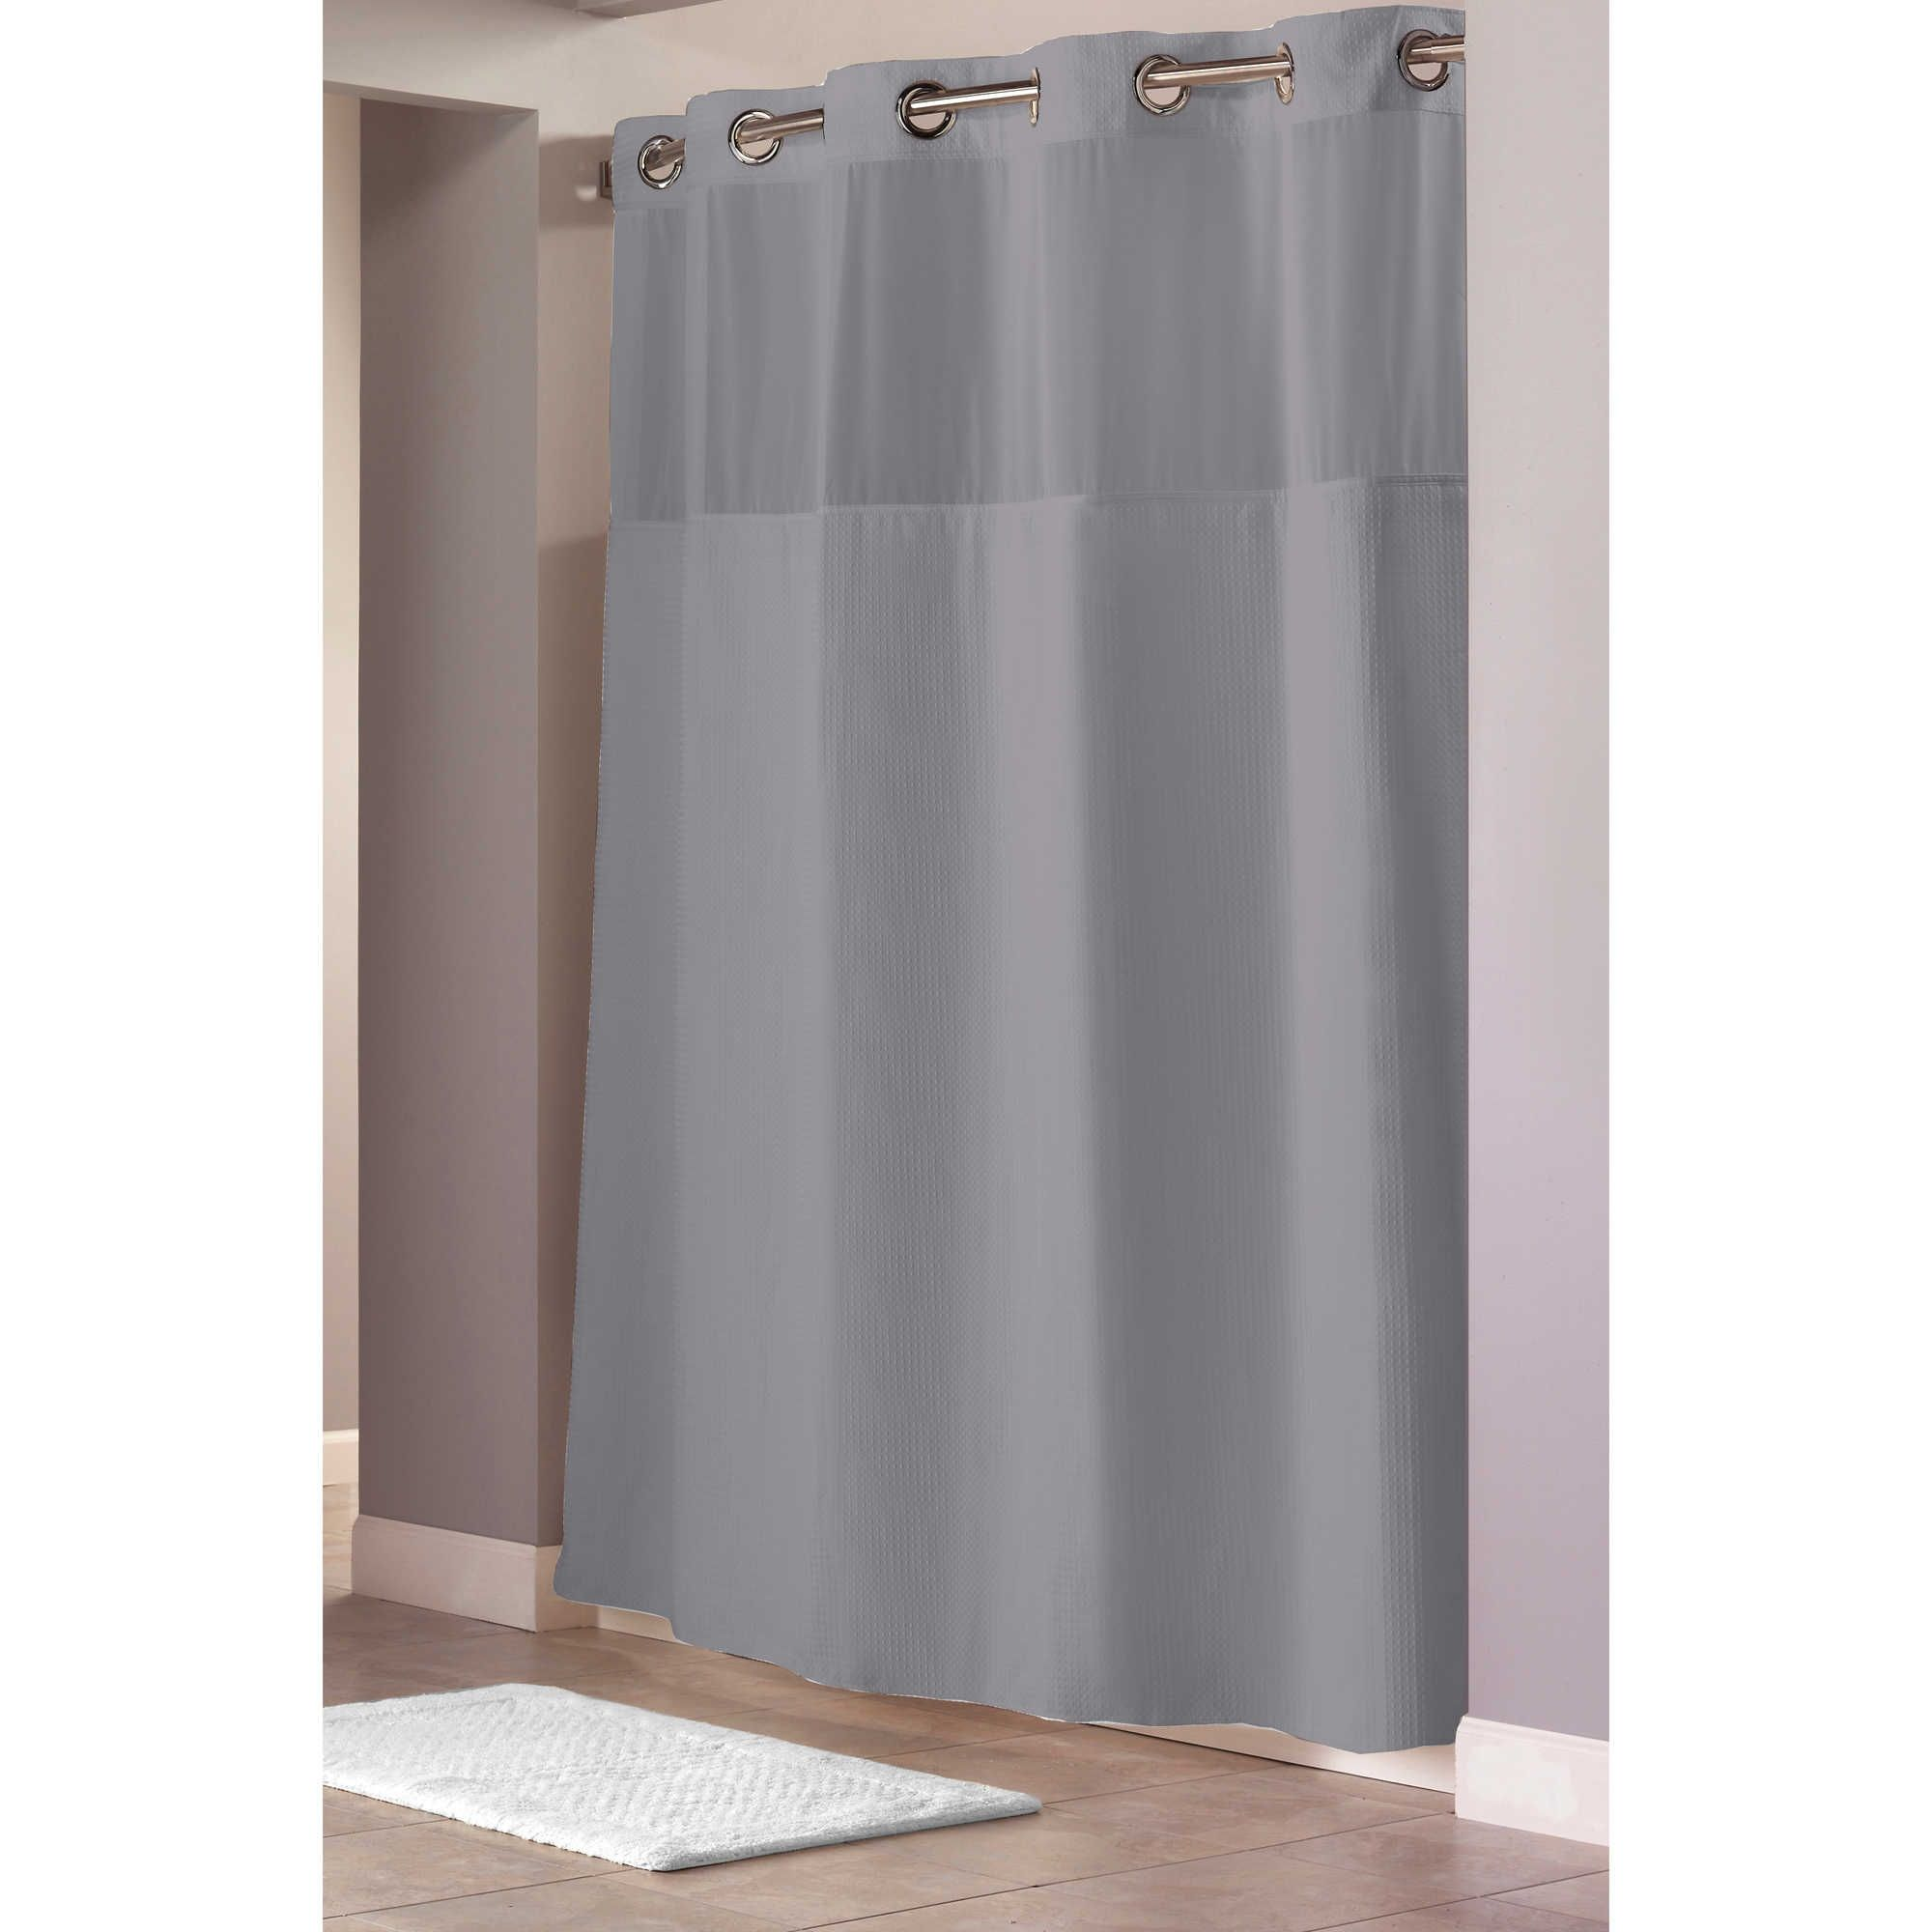 Awesome Stall Shower Curtain Liner 54 X 78